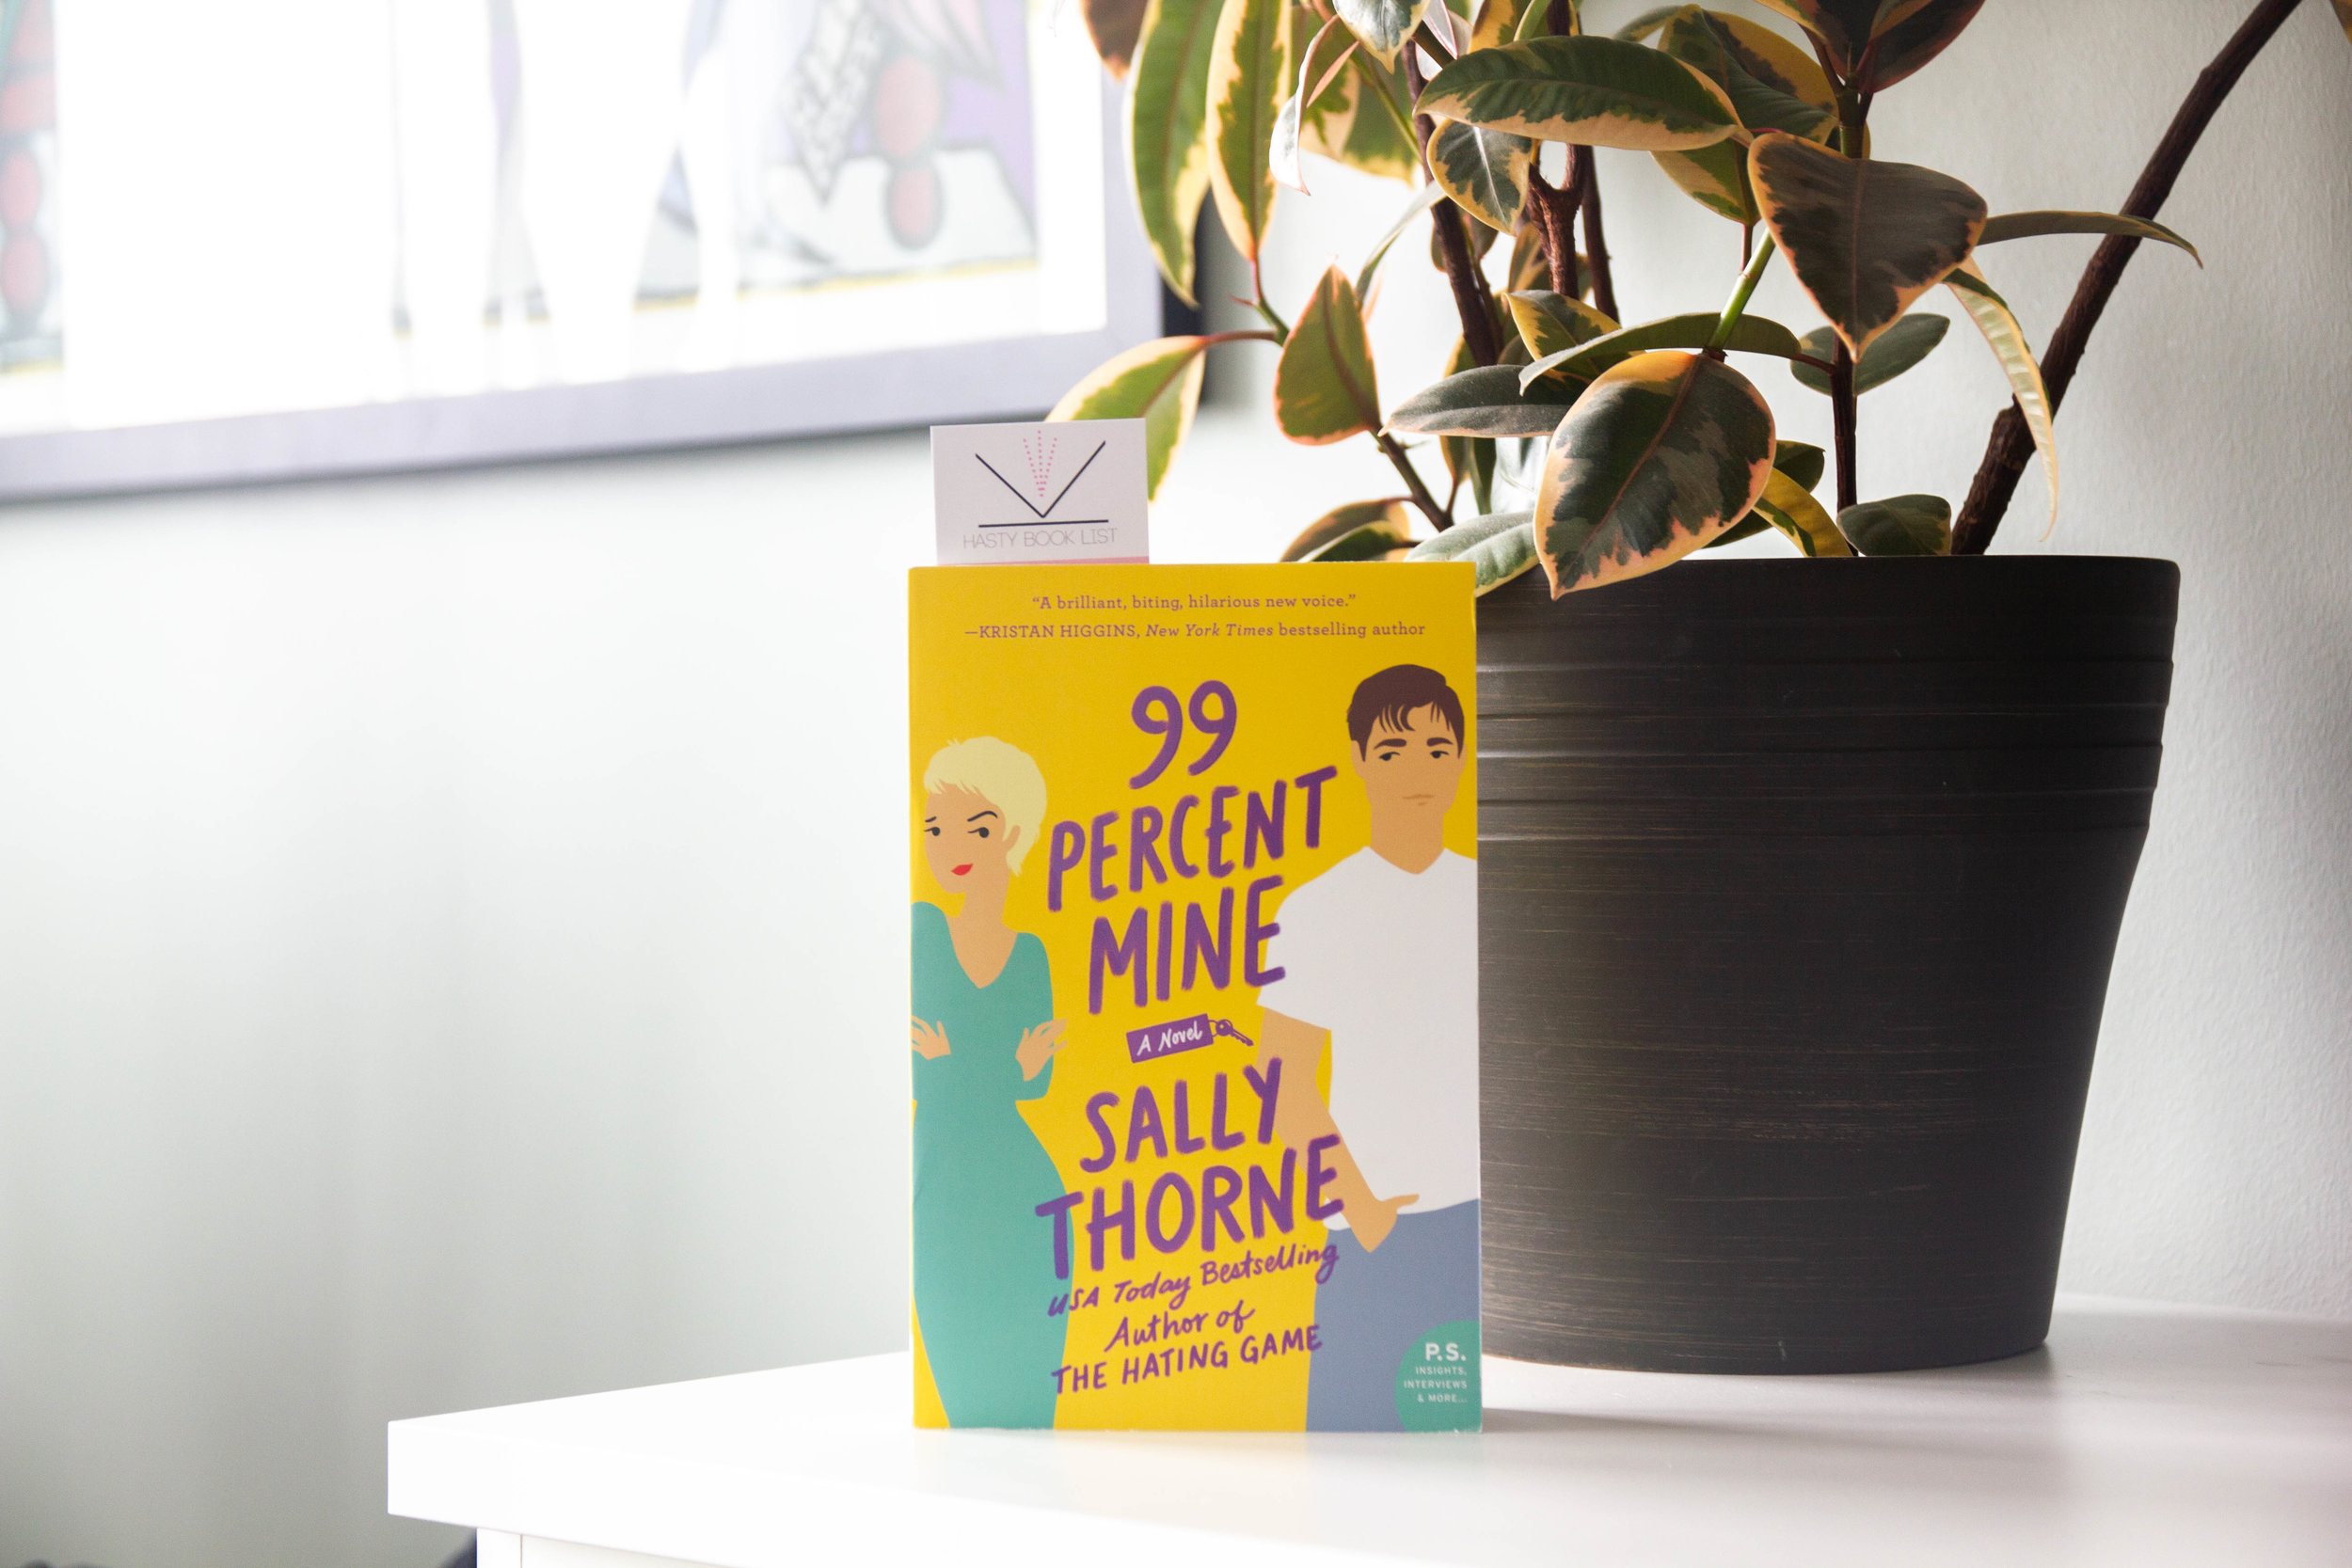 Book Feature - 99 Percent Mine by Sally Thorne